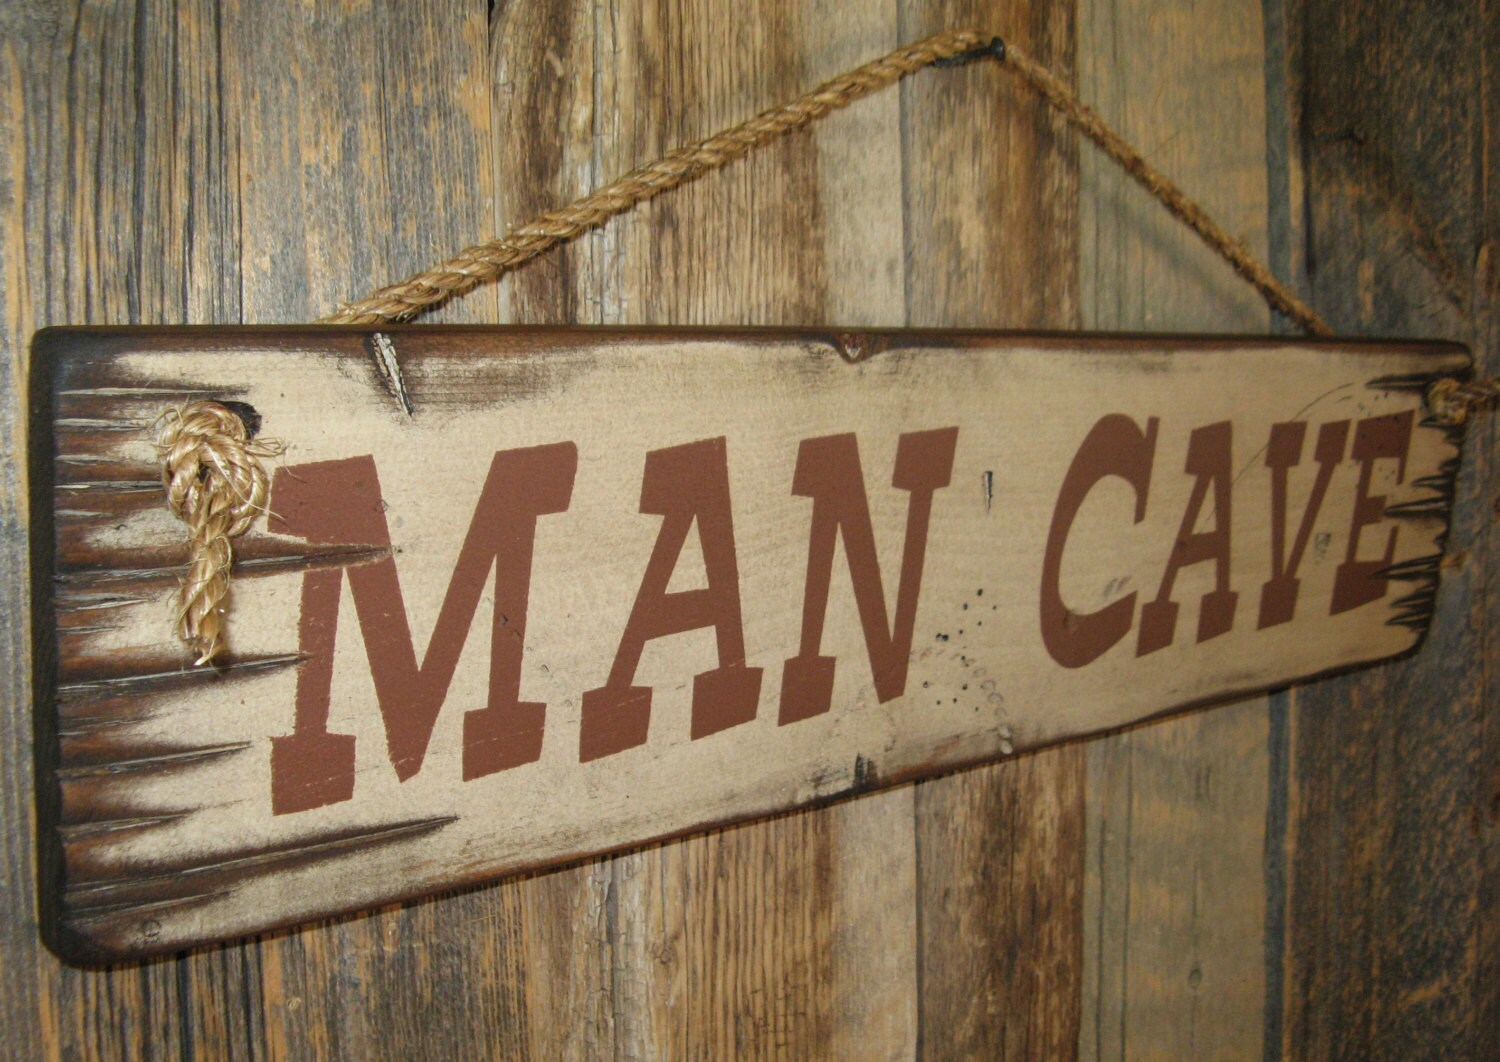 Man Cave Signs Wooden : Man cave antiqued wooden sign